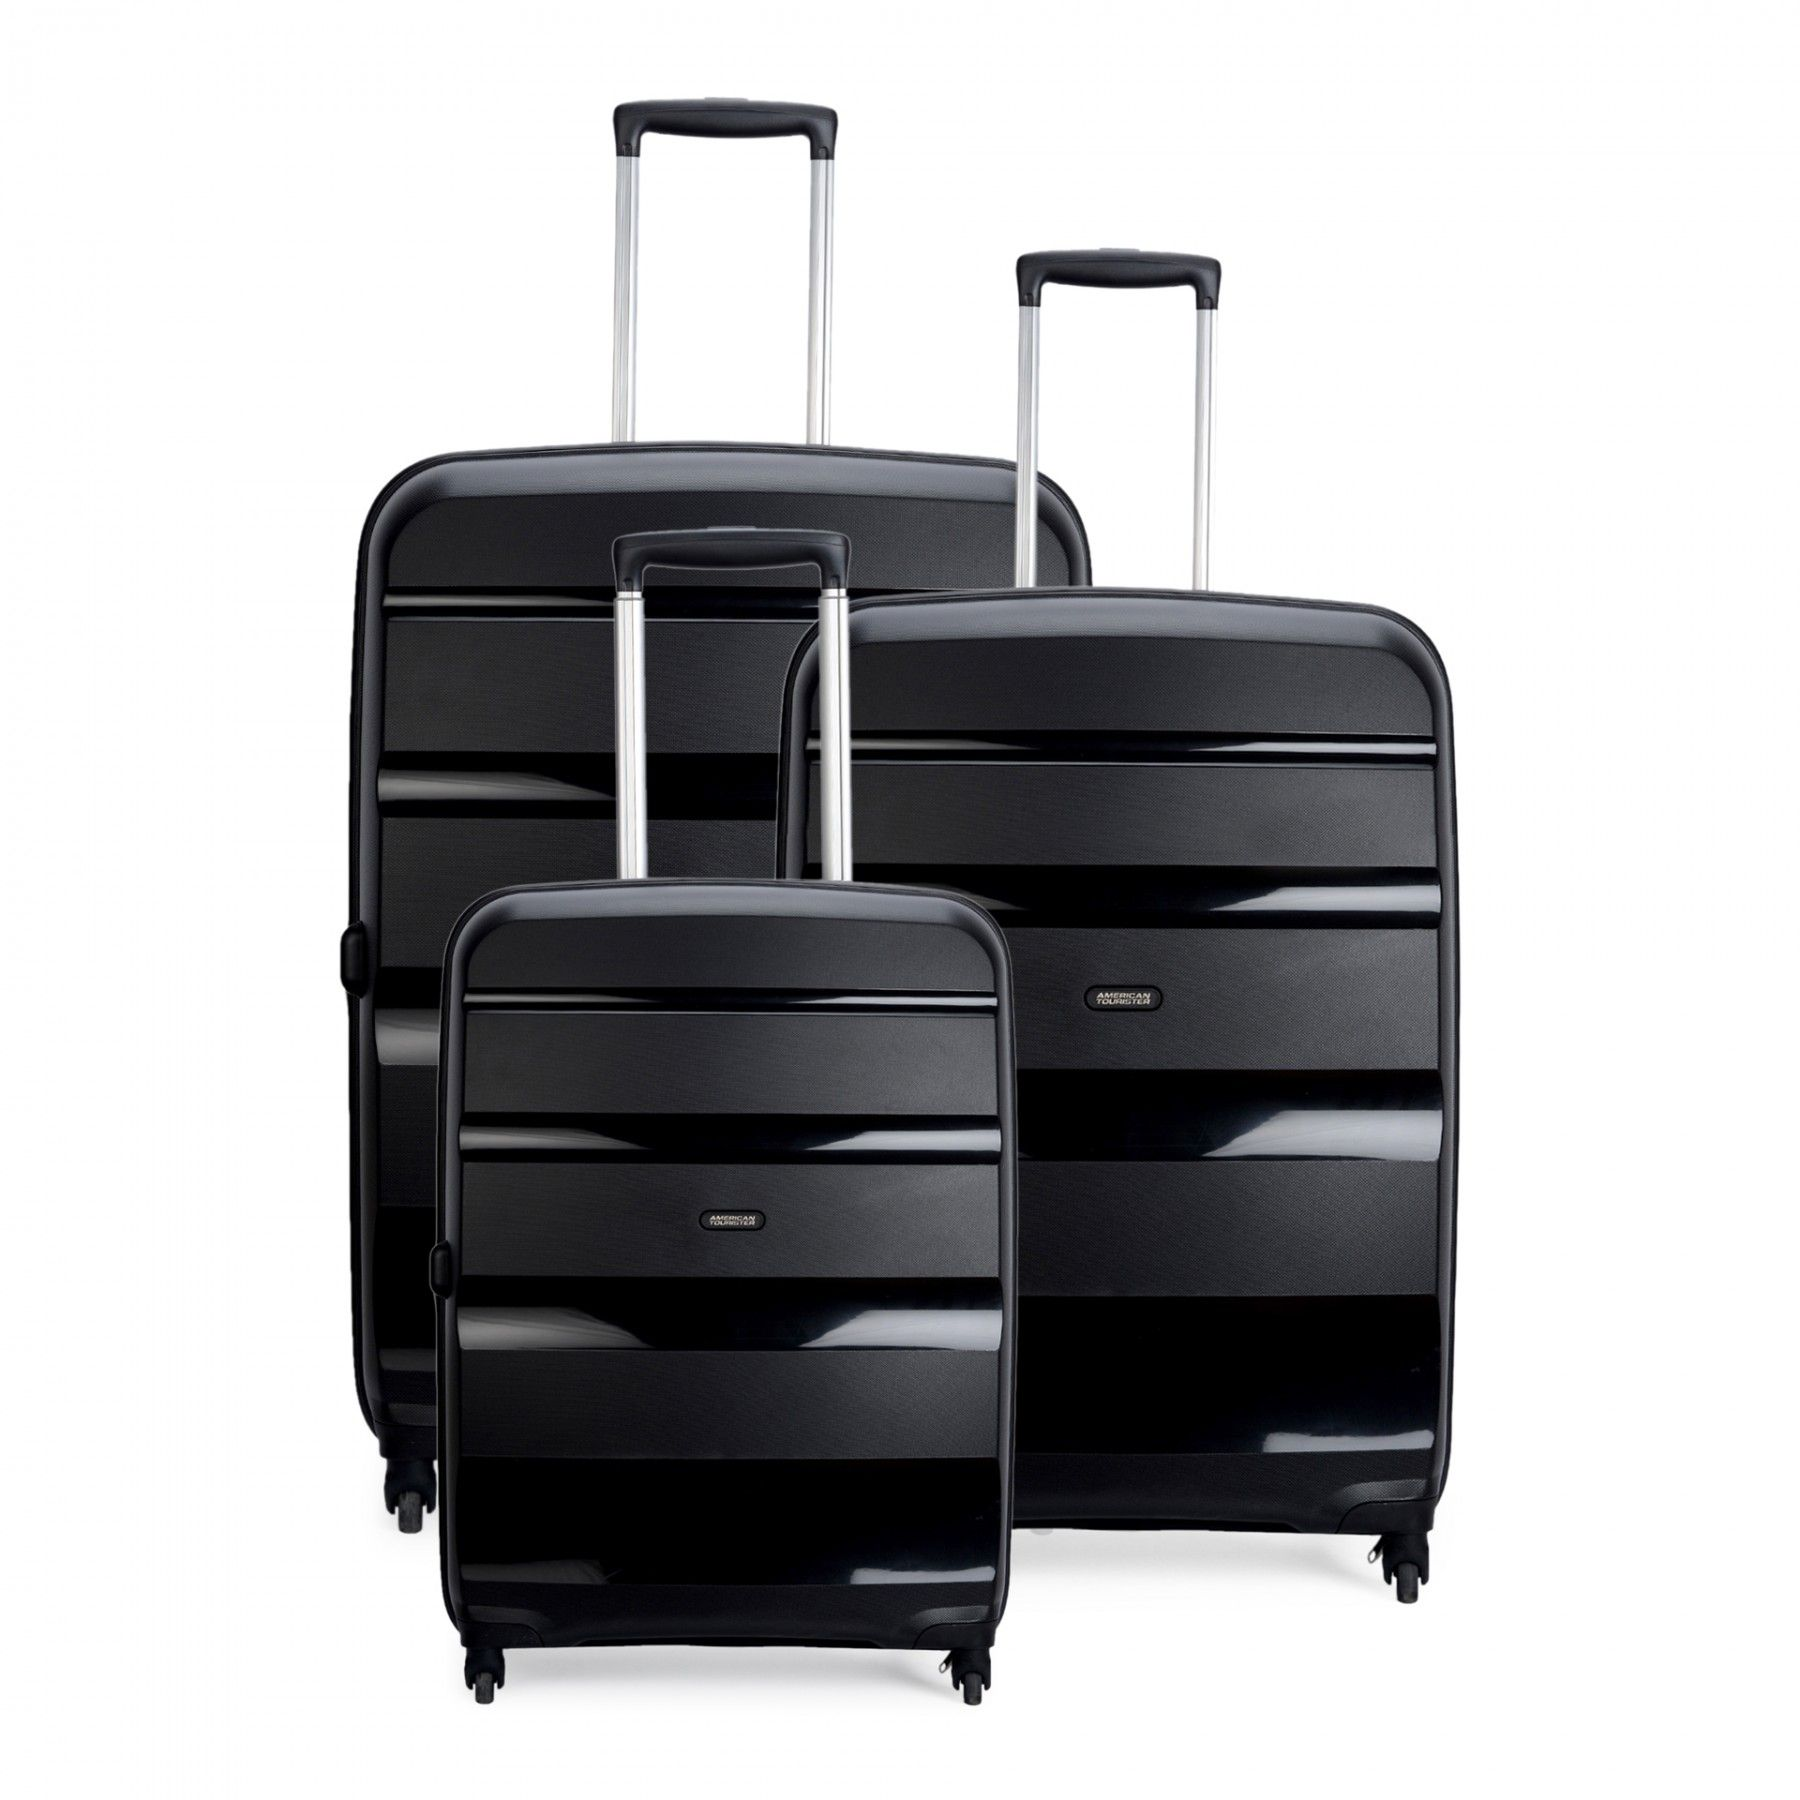 Luggage With Drawers Bon Air Hardside Luggage American Tourister Bentley 50000 Set